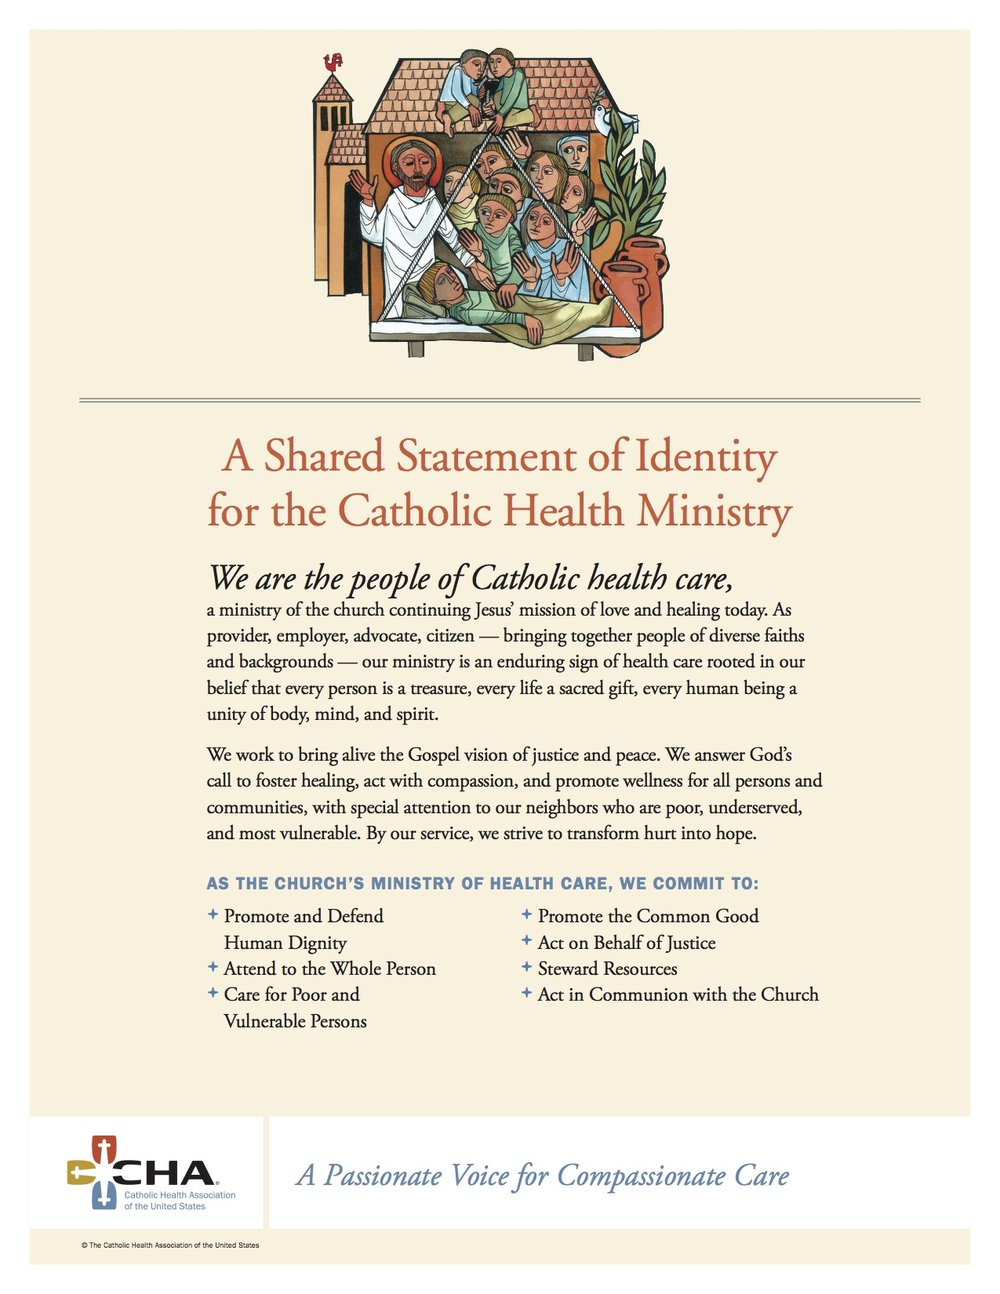 shared-statement-of-identity-flyer-english.jpg